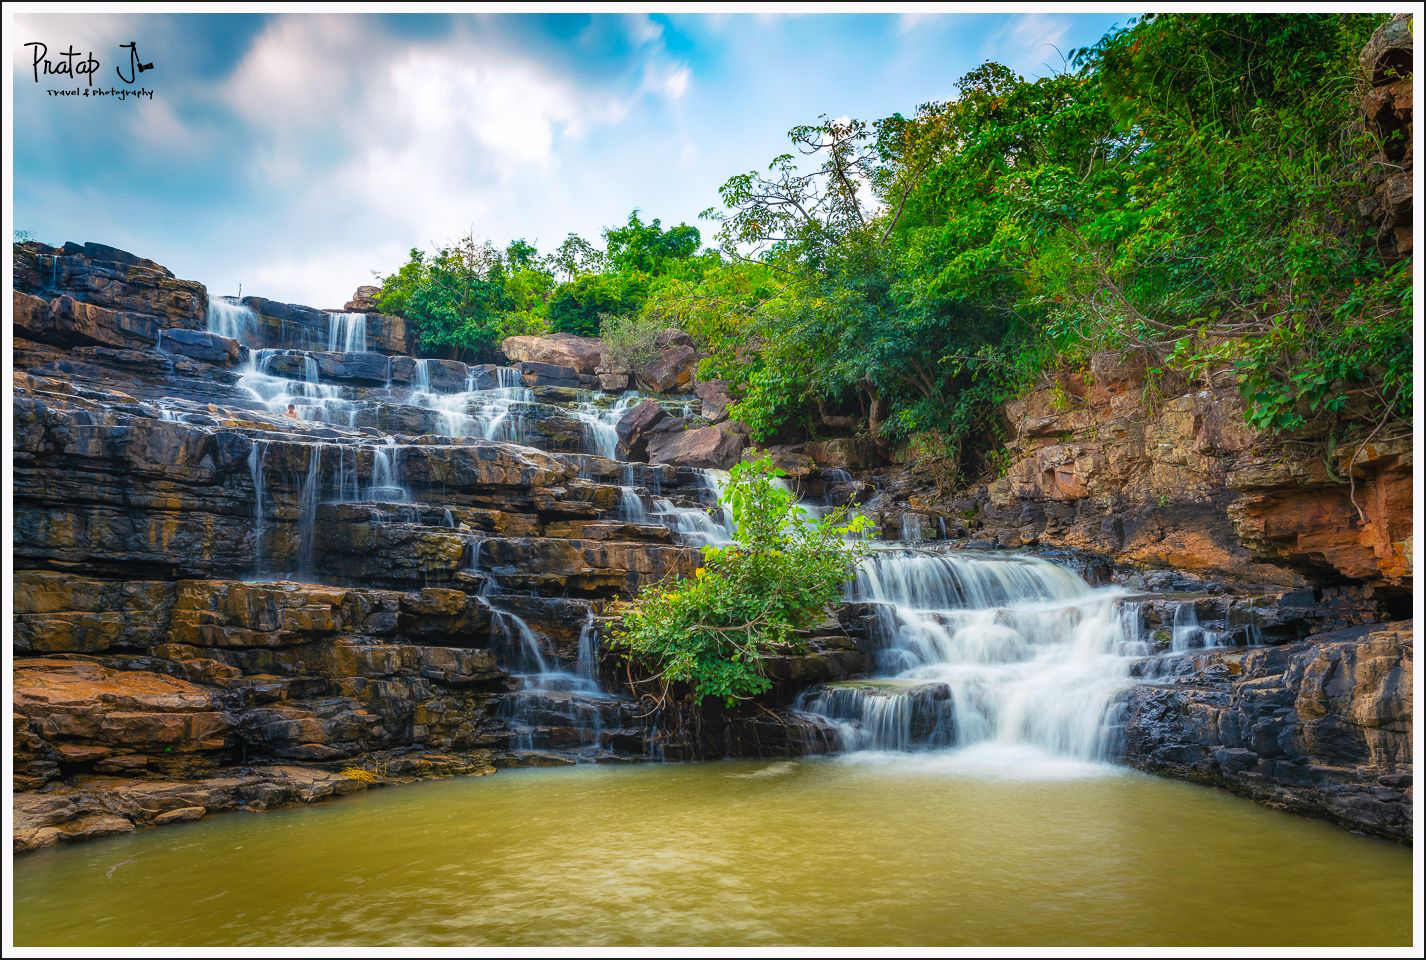 Chitradhara Waterfall near Jagdalpur